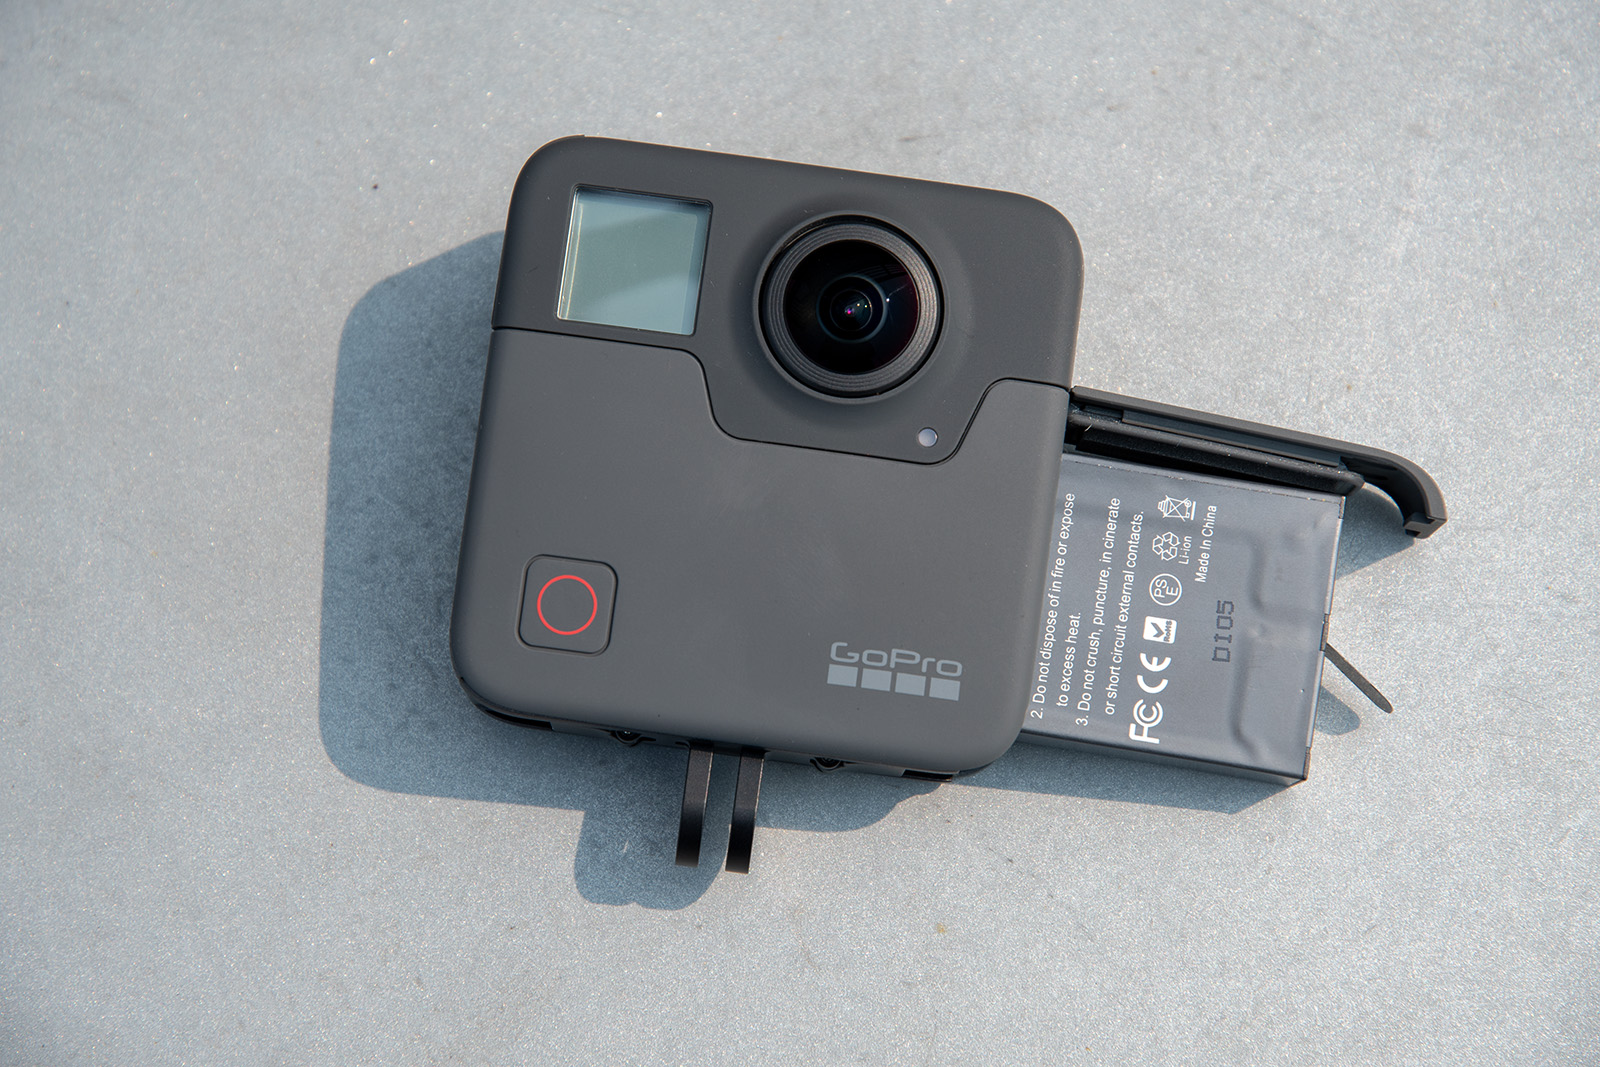 Review The Gopro Fusion Is A Different Kind Of Action Camera Flash Circuit Digital Cameras Buy An Extra Battery Its Hard To Keep Both Charged For Longer Outings In My Experience Provided Respectable 60 70 Minutes Shooting